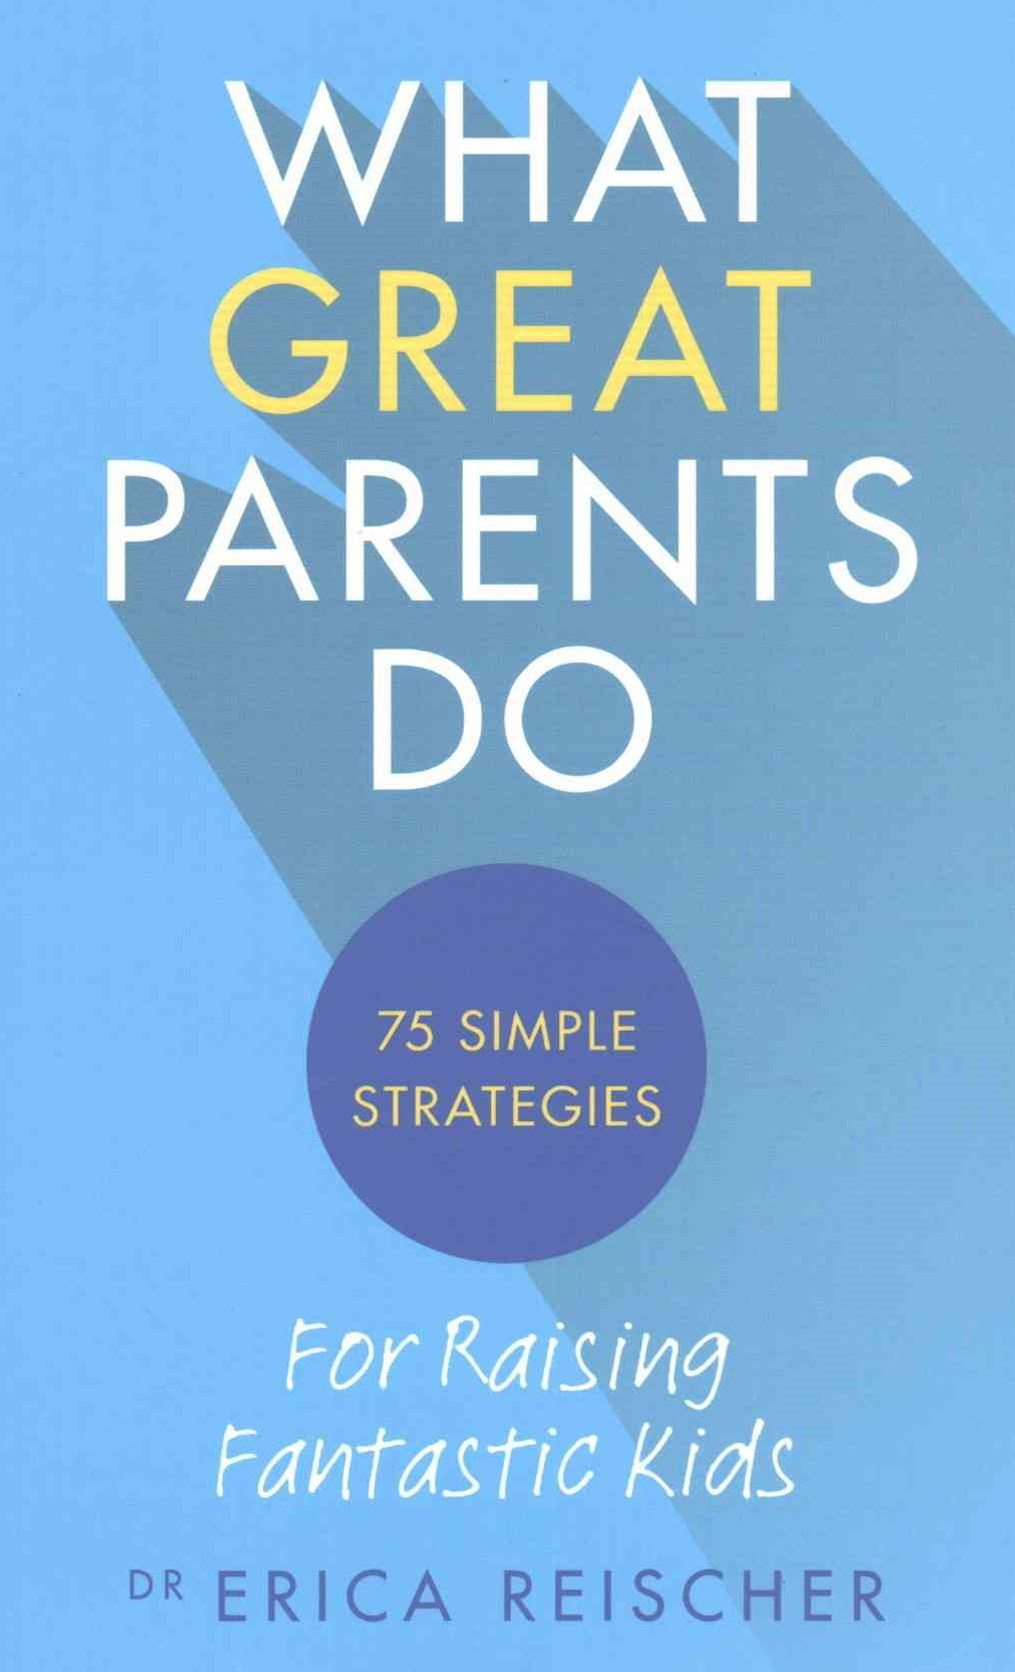 What Great Parents Do: 75 simple strategies for raising fantastic kids